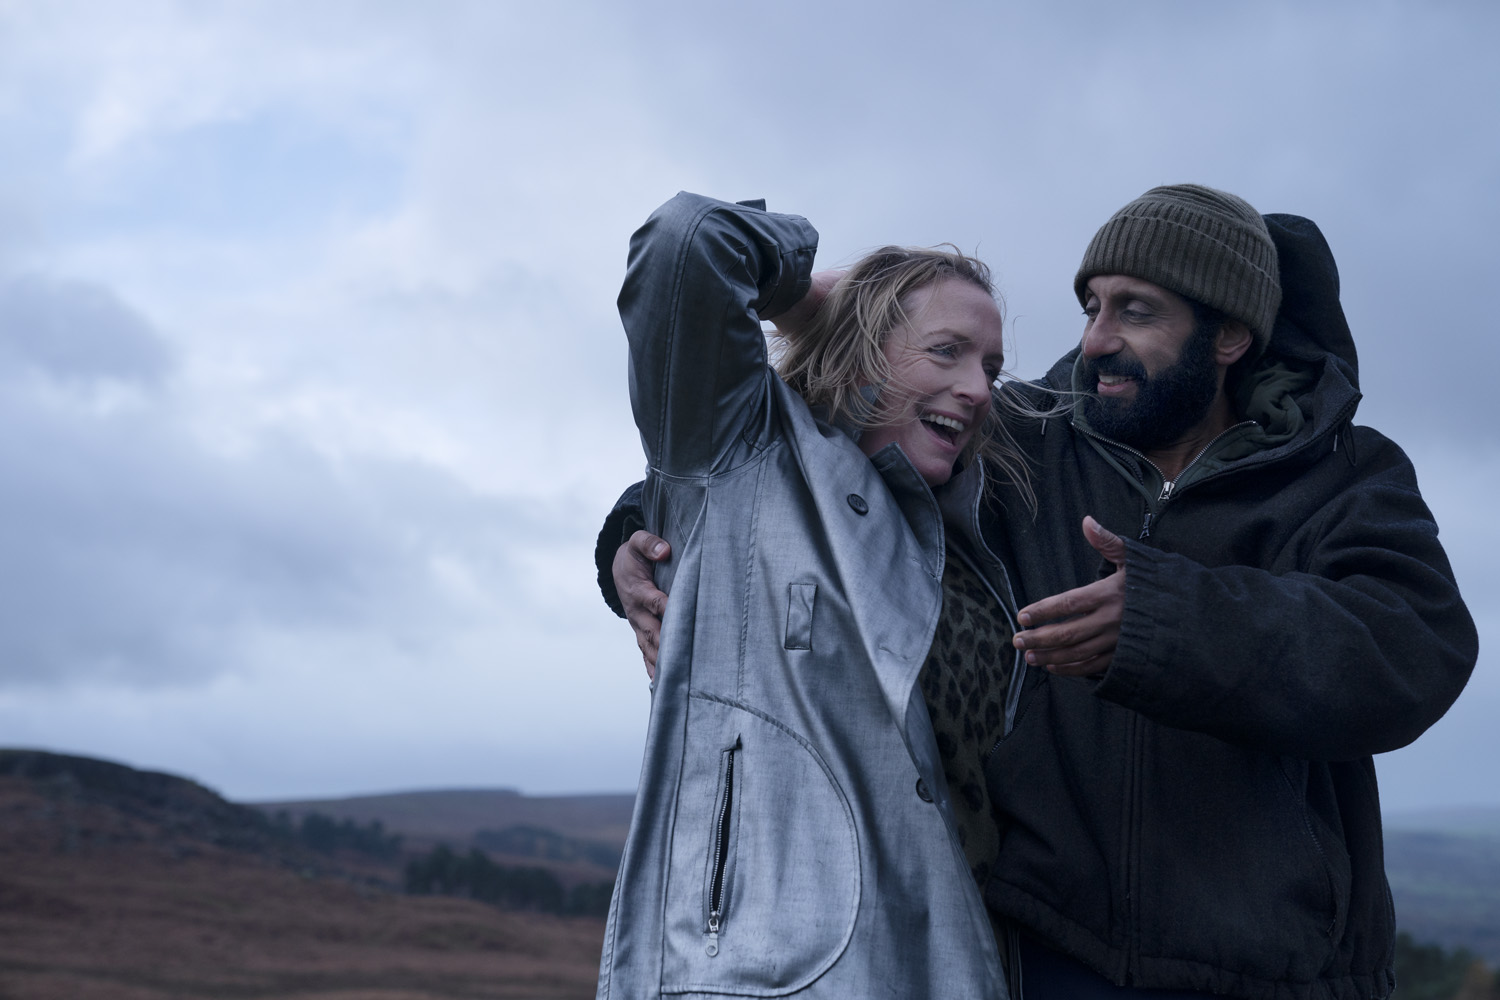 A woman and man outside with hills in the distance behind them. The woman has windswept blonde hair and is smiling, while wearing a leopard print top and bluish-grey jacket. The man has a beard and wears a beanie and dark coat, while looking at the woman and smiling.